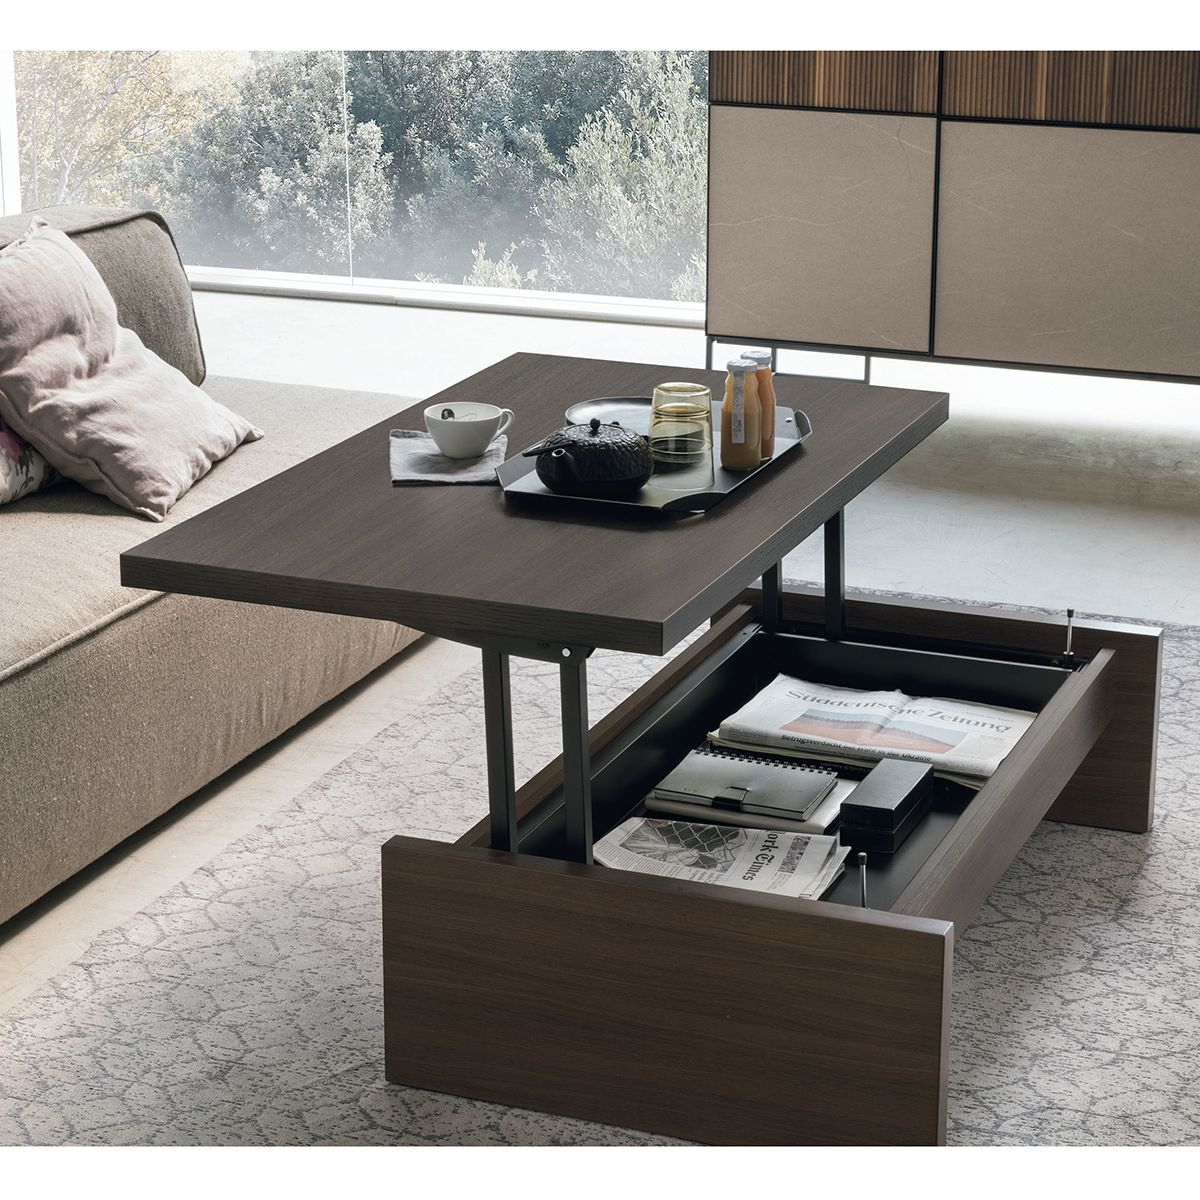 Cosmo Multi Functional Table In 2021 Coffee Table With Storage Coffee Table Function Tables [ jpg ]